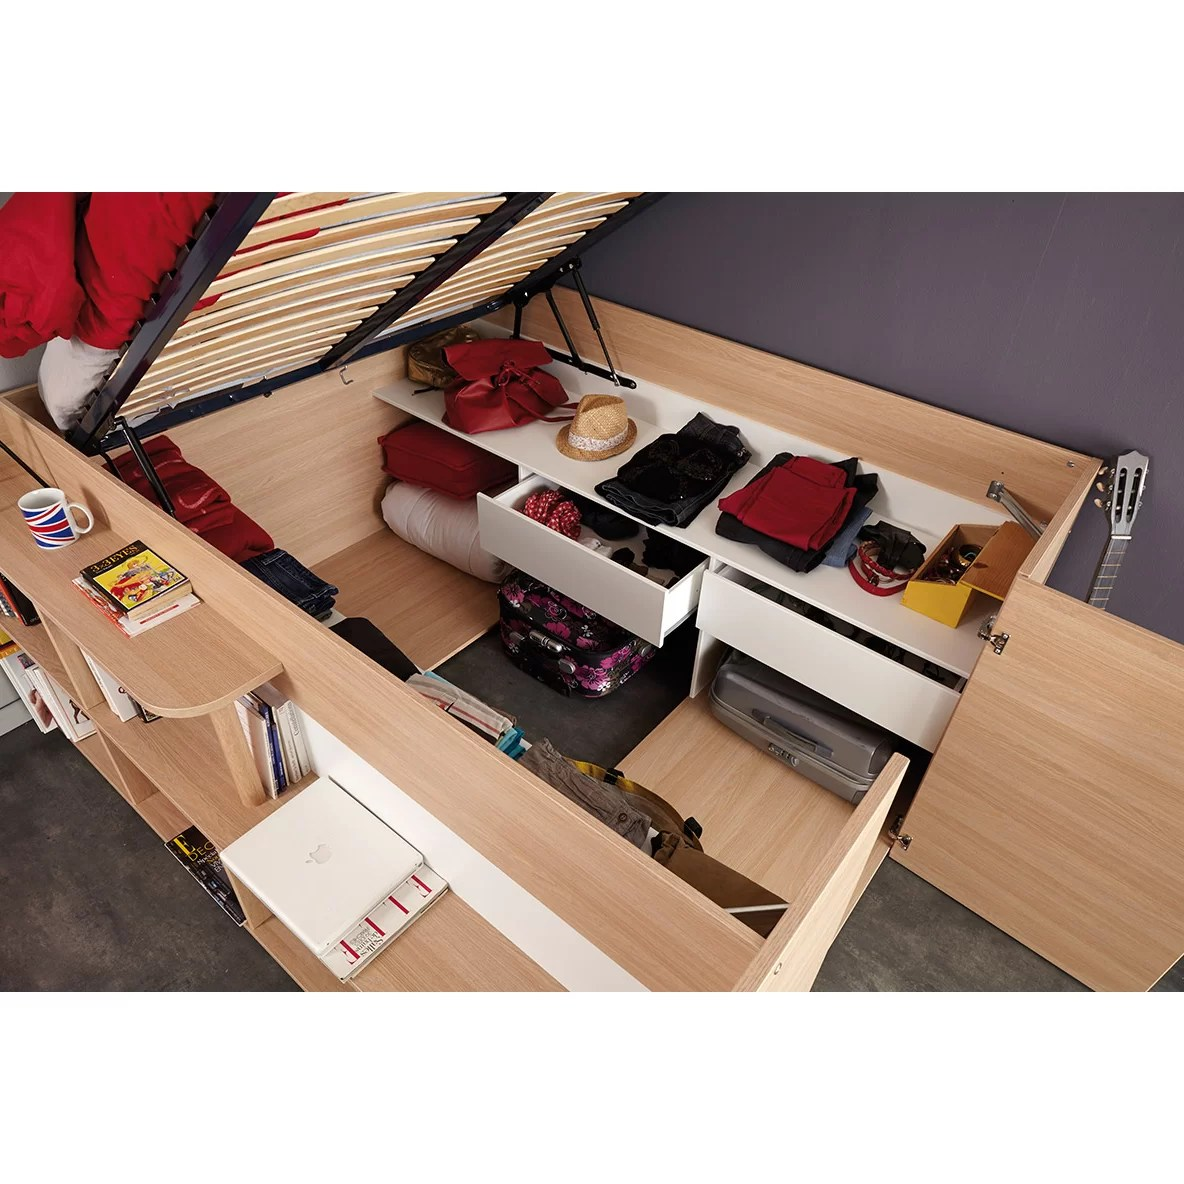 Bunk Beds With Storage Space Parisot Storage Platform Bed And Reviews Wayfair